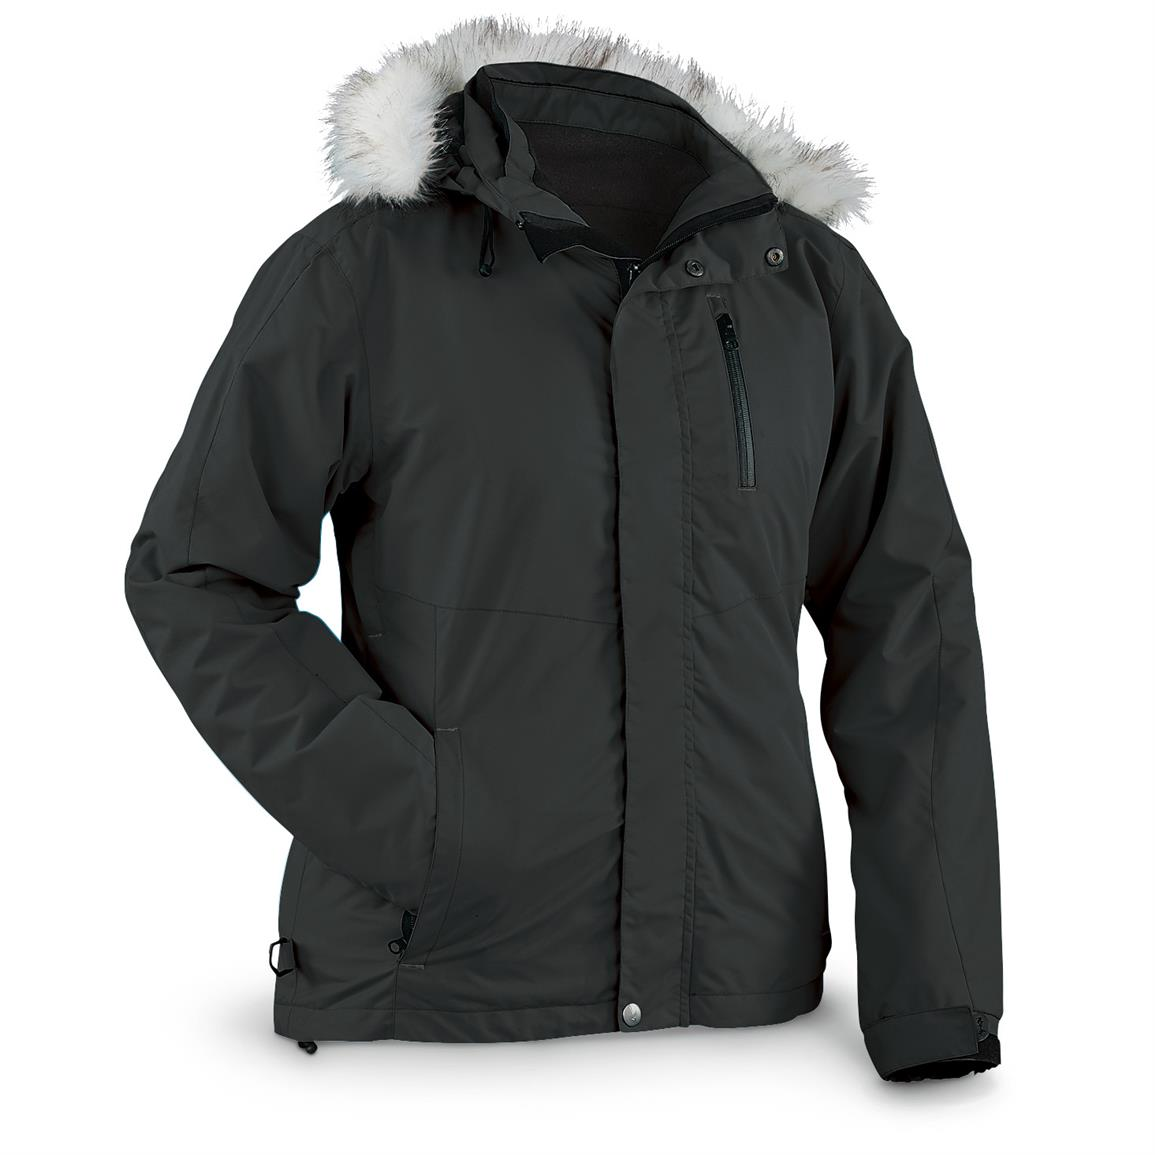 Guide Gear Women's Shasta Jacket, Black